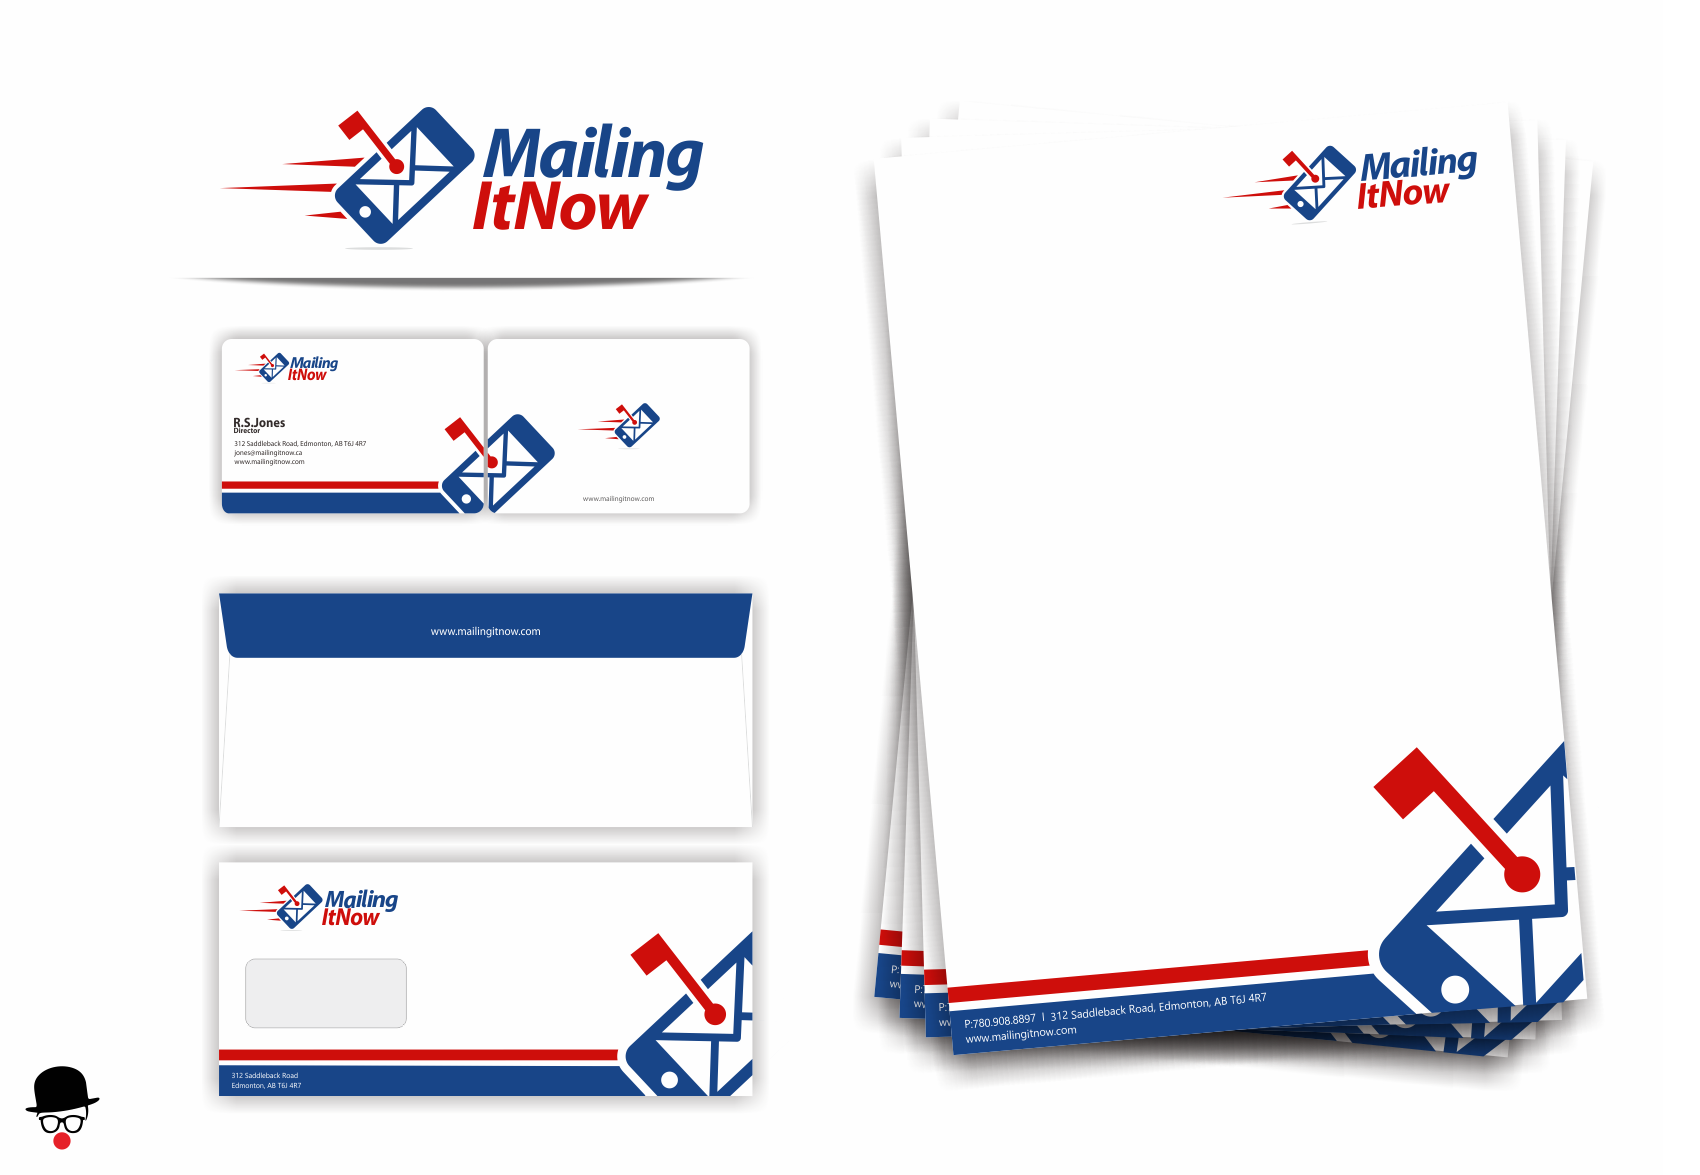 Create the next logo for Mailing It Now